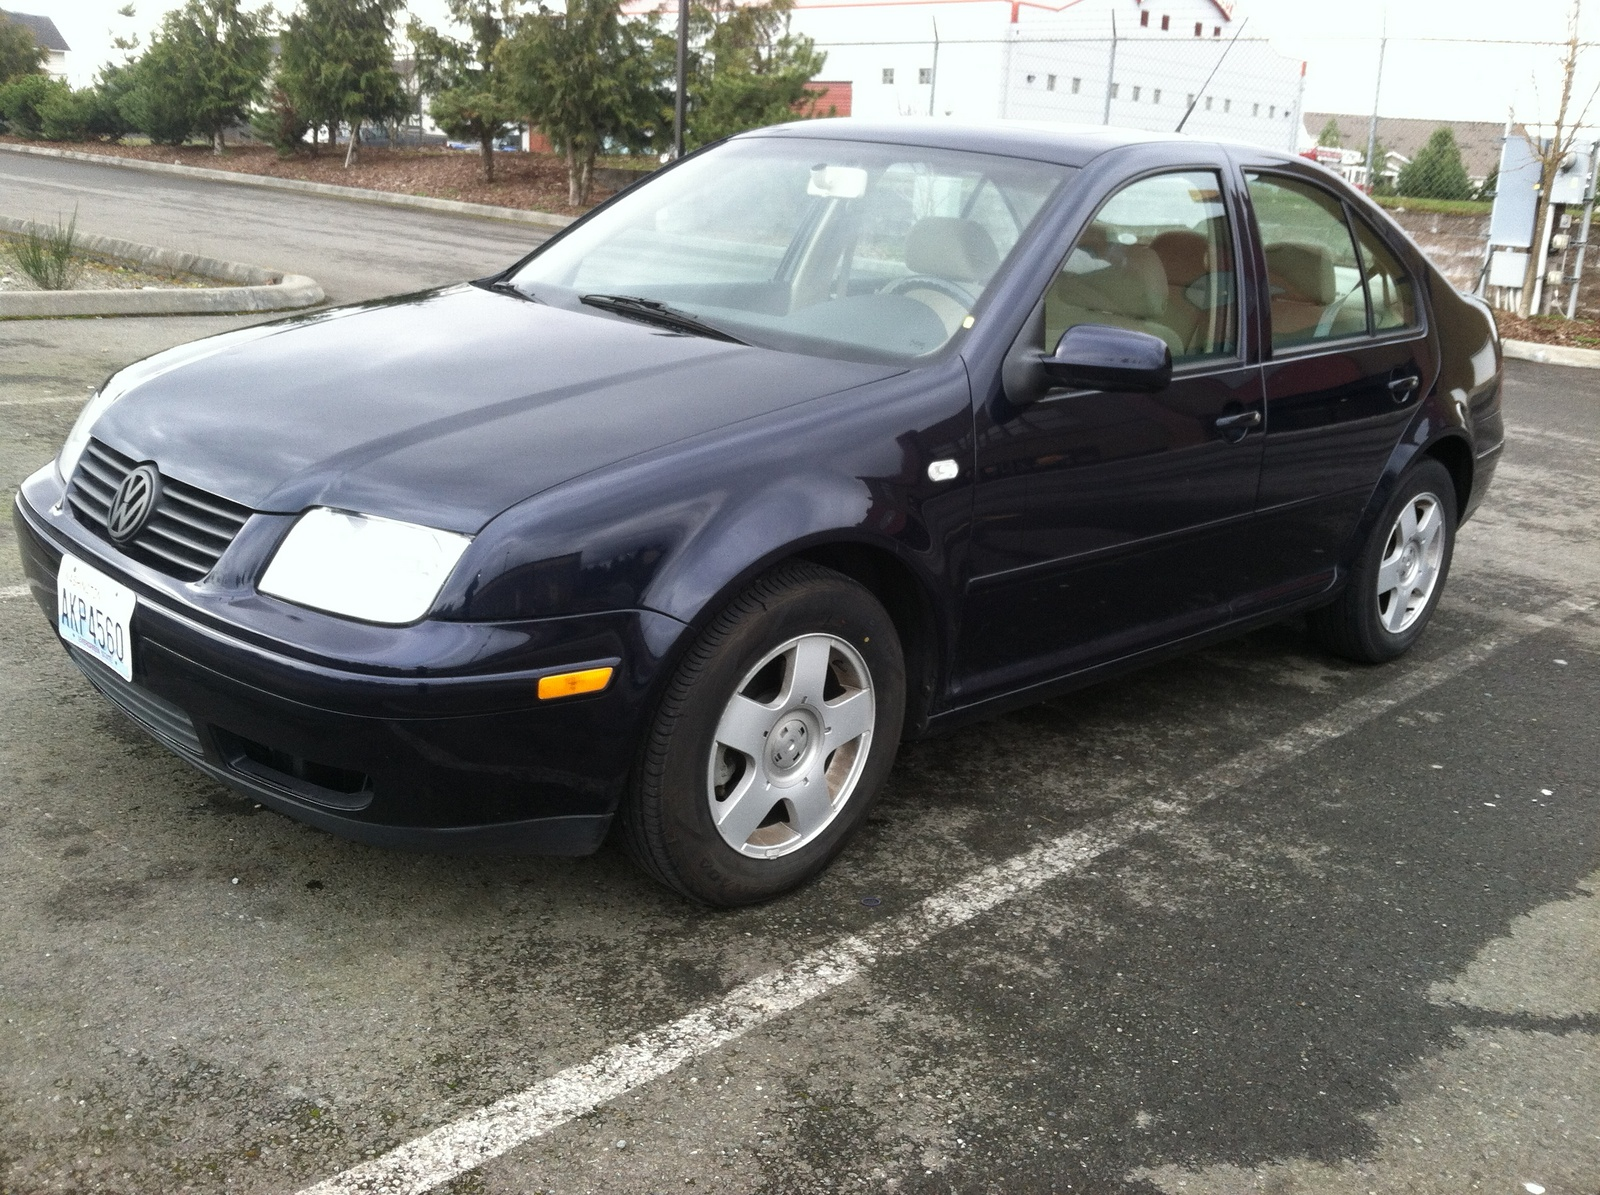 Volkswagen Jetta 18 2000 Technical Specifications Interior And Vr6 Engine Diagram Photo 5